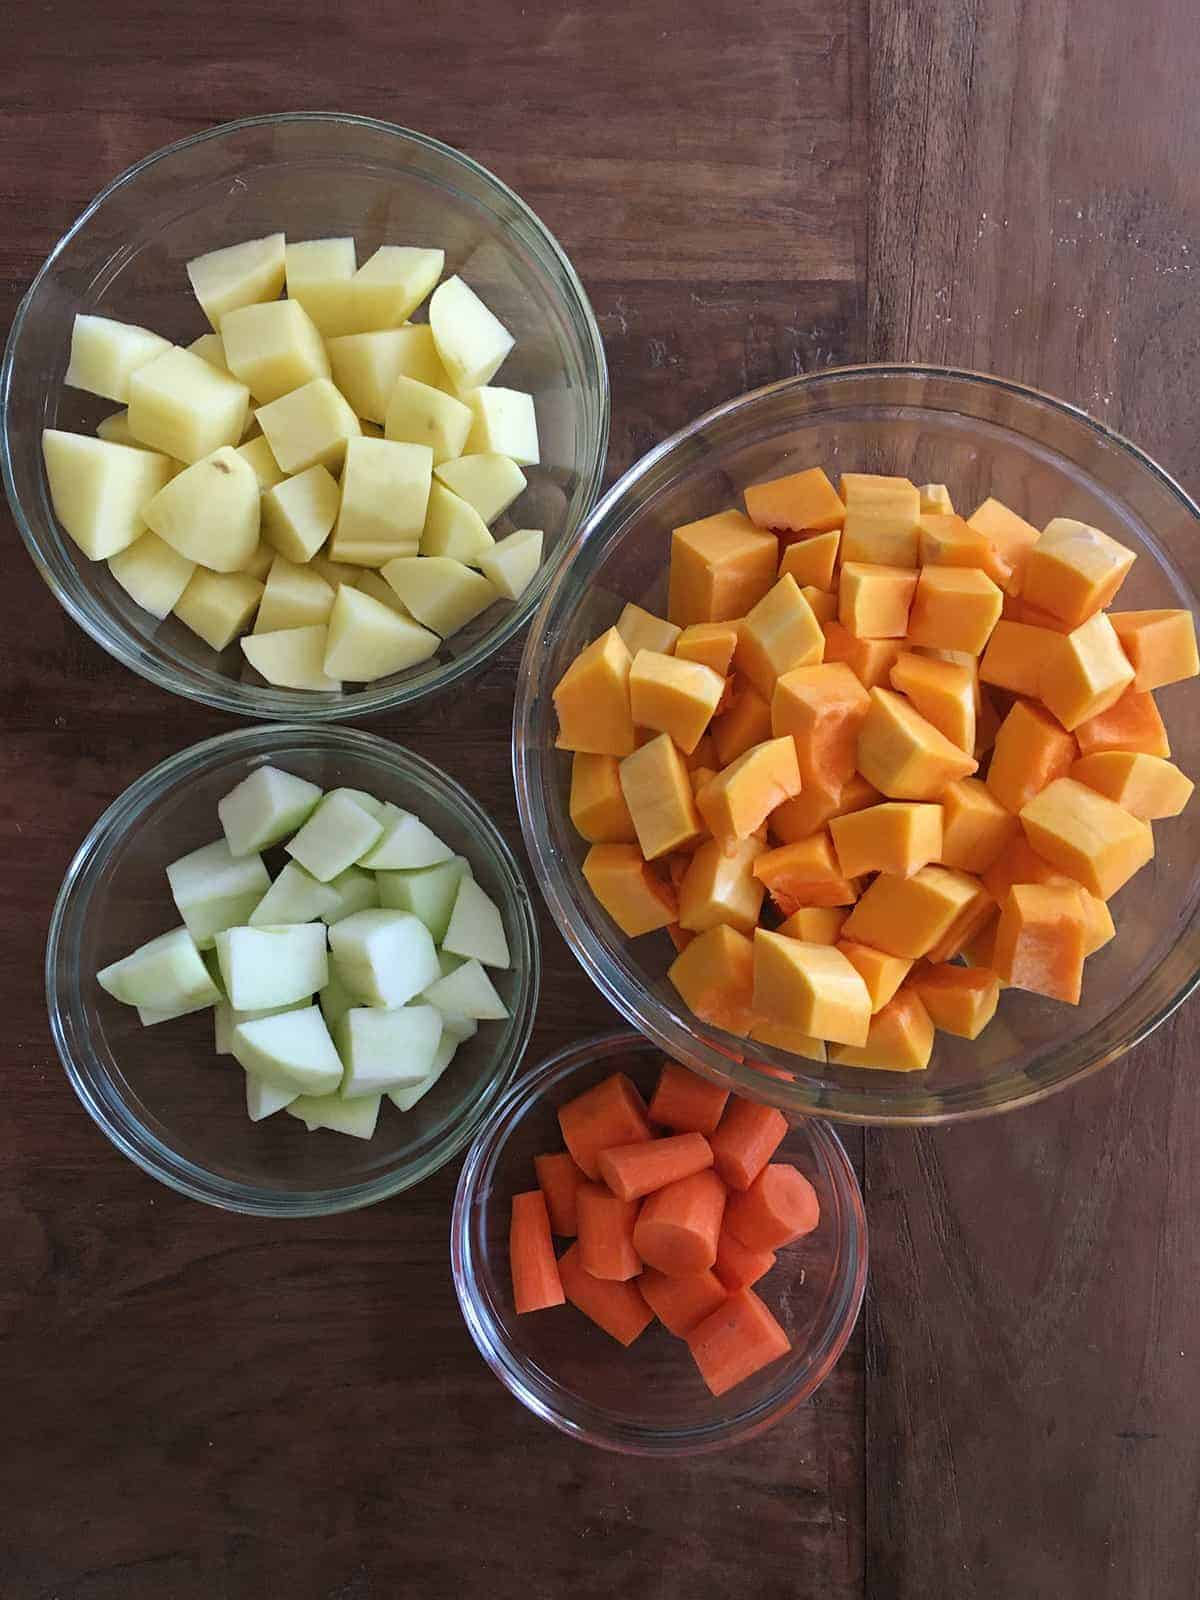 Chopped potatoes, butternut squash, apples and carrots in glass food prep bowls atop a wood table